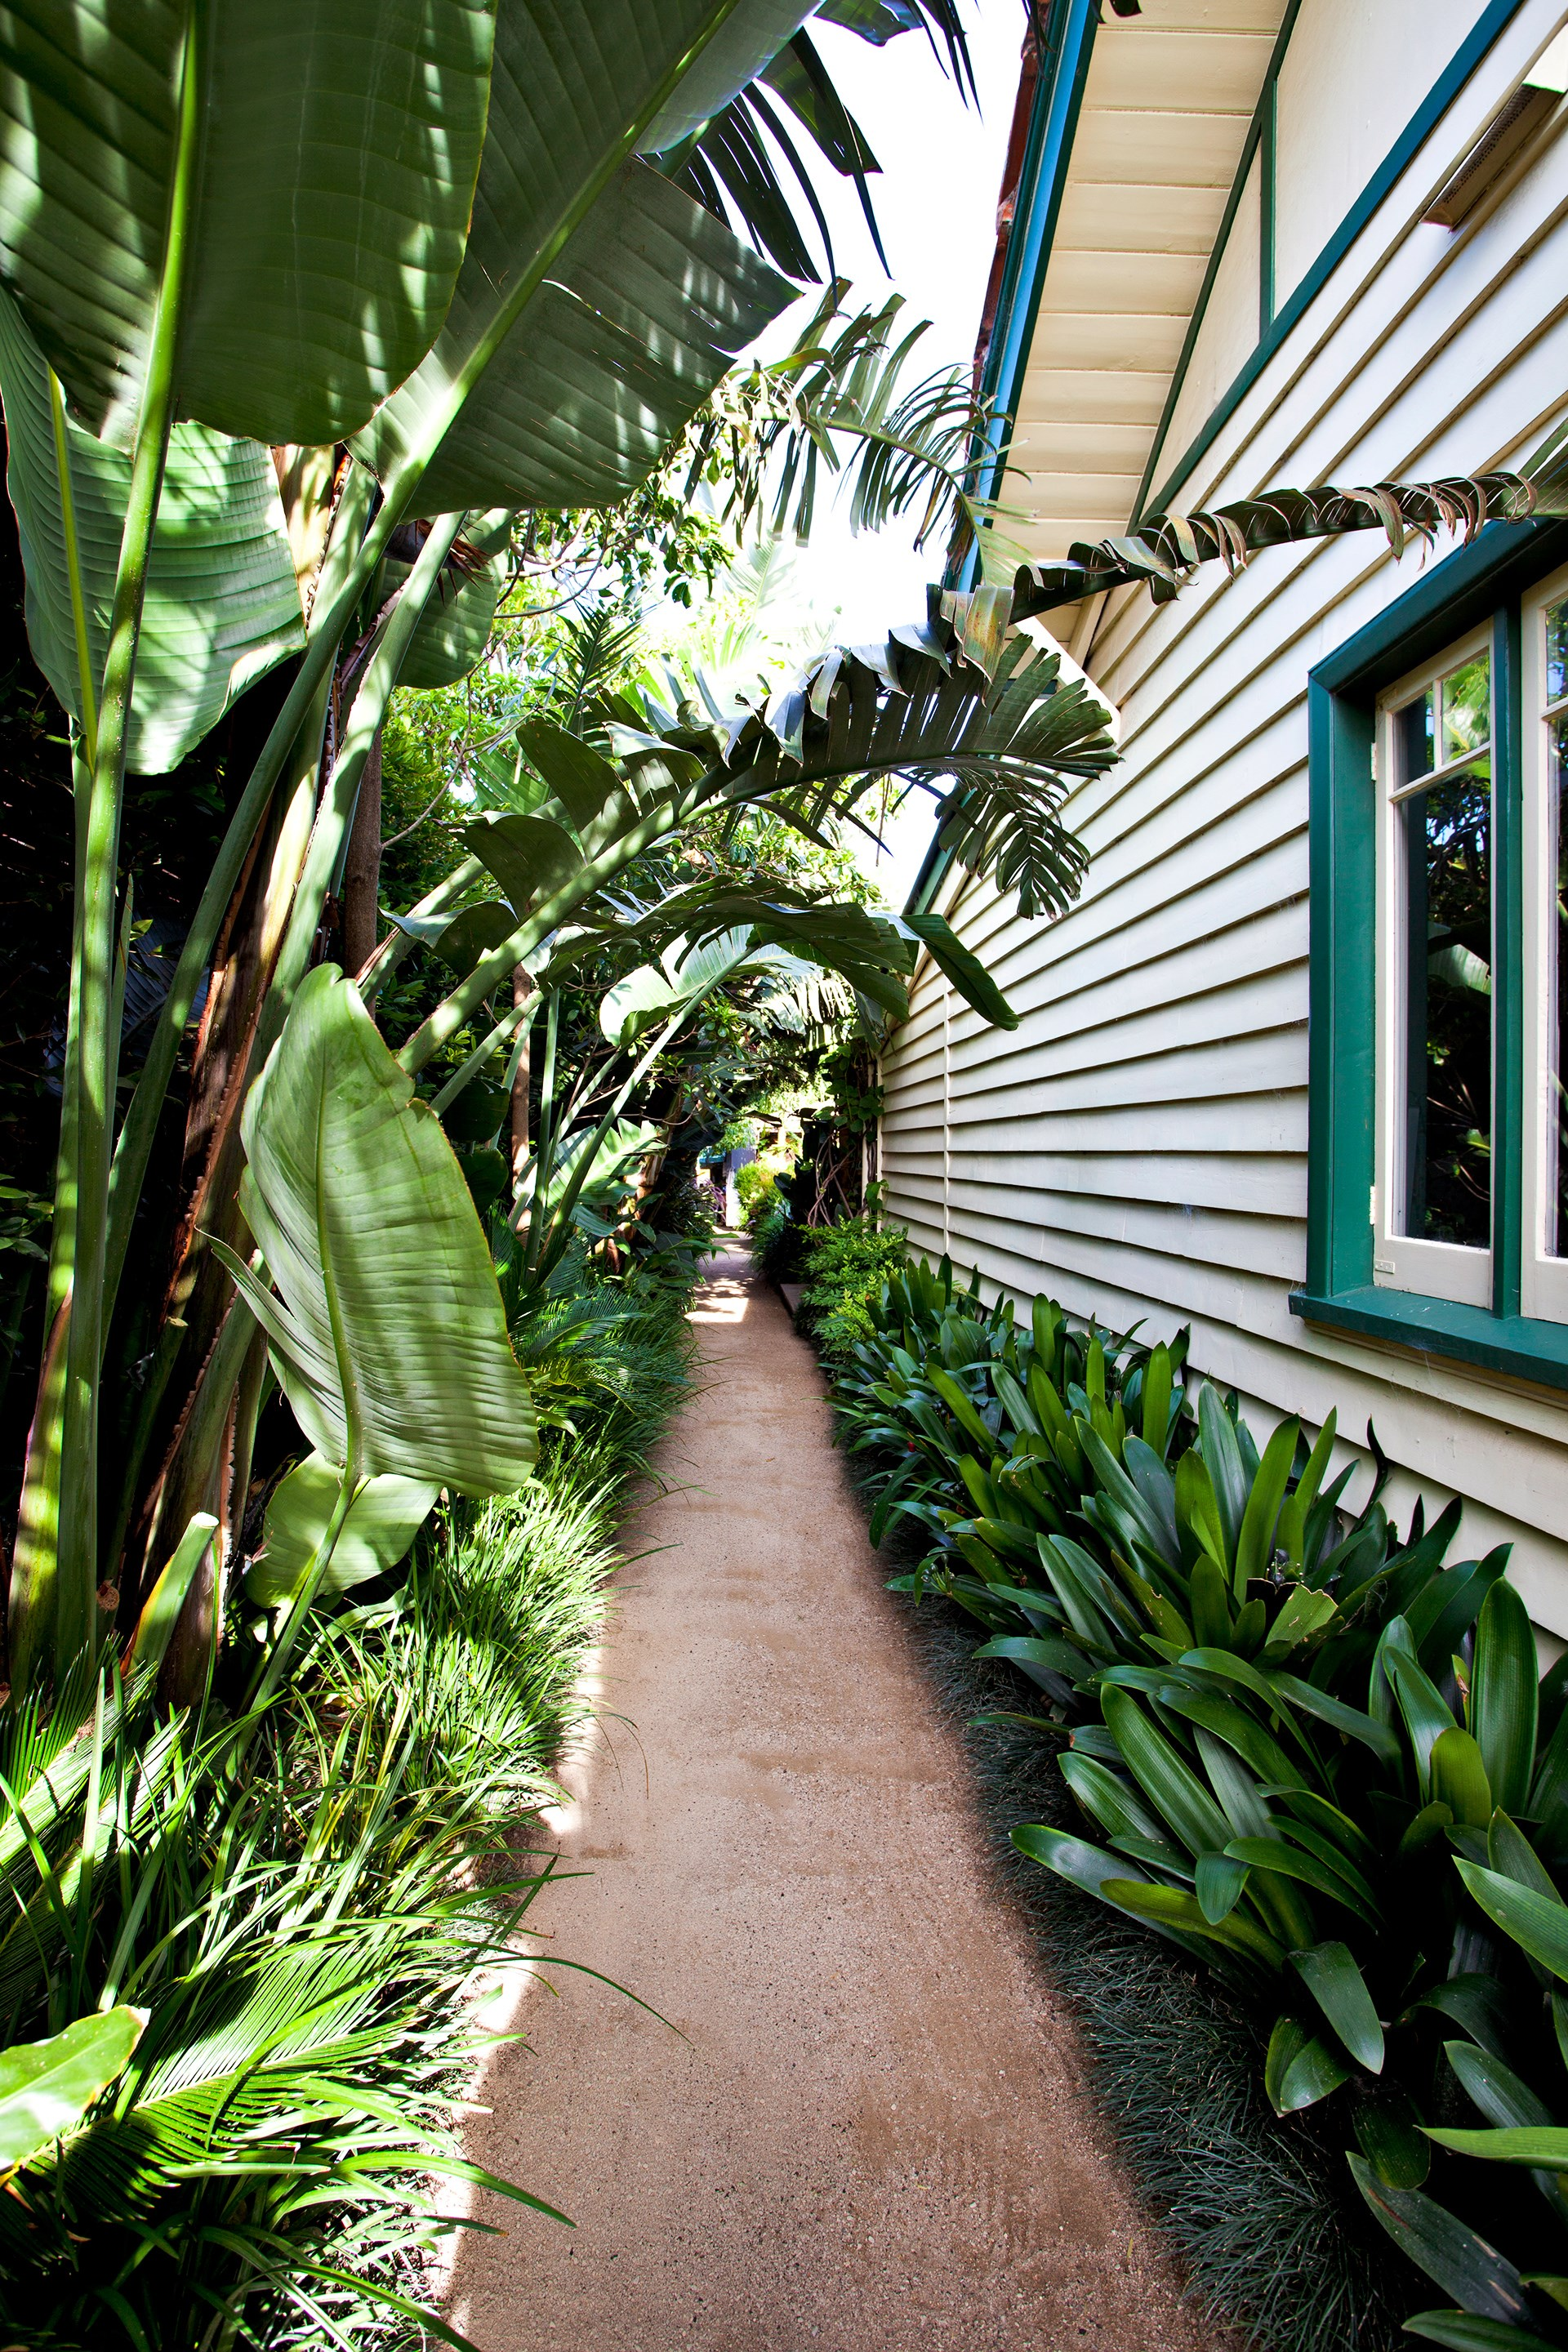 Horticulturist Hendrik Van Leeuwen's garden offers much food for thought. It's a shining example of a [productive garden](http://www.homestolove.com.au/ripe-for-the-picking-a-productive-urban-garden-3508) and it shows how we could all make better use of our backyards.